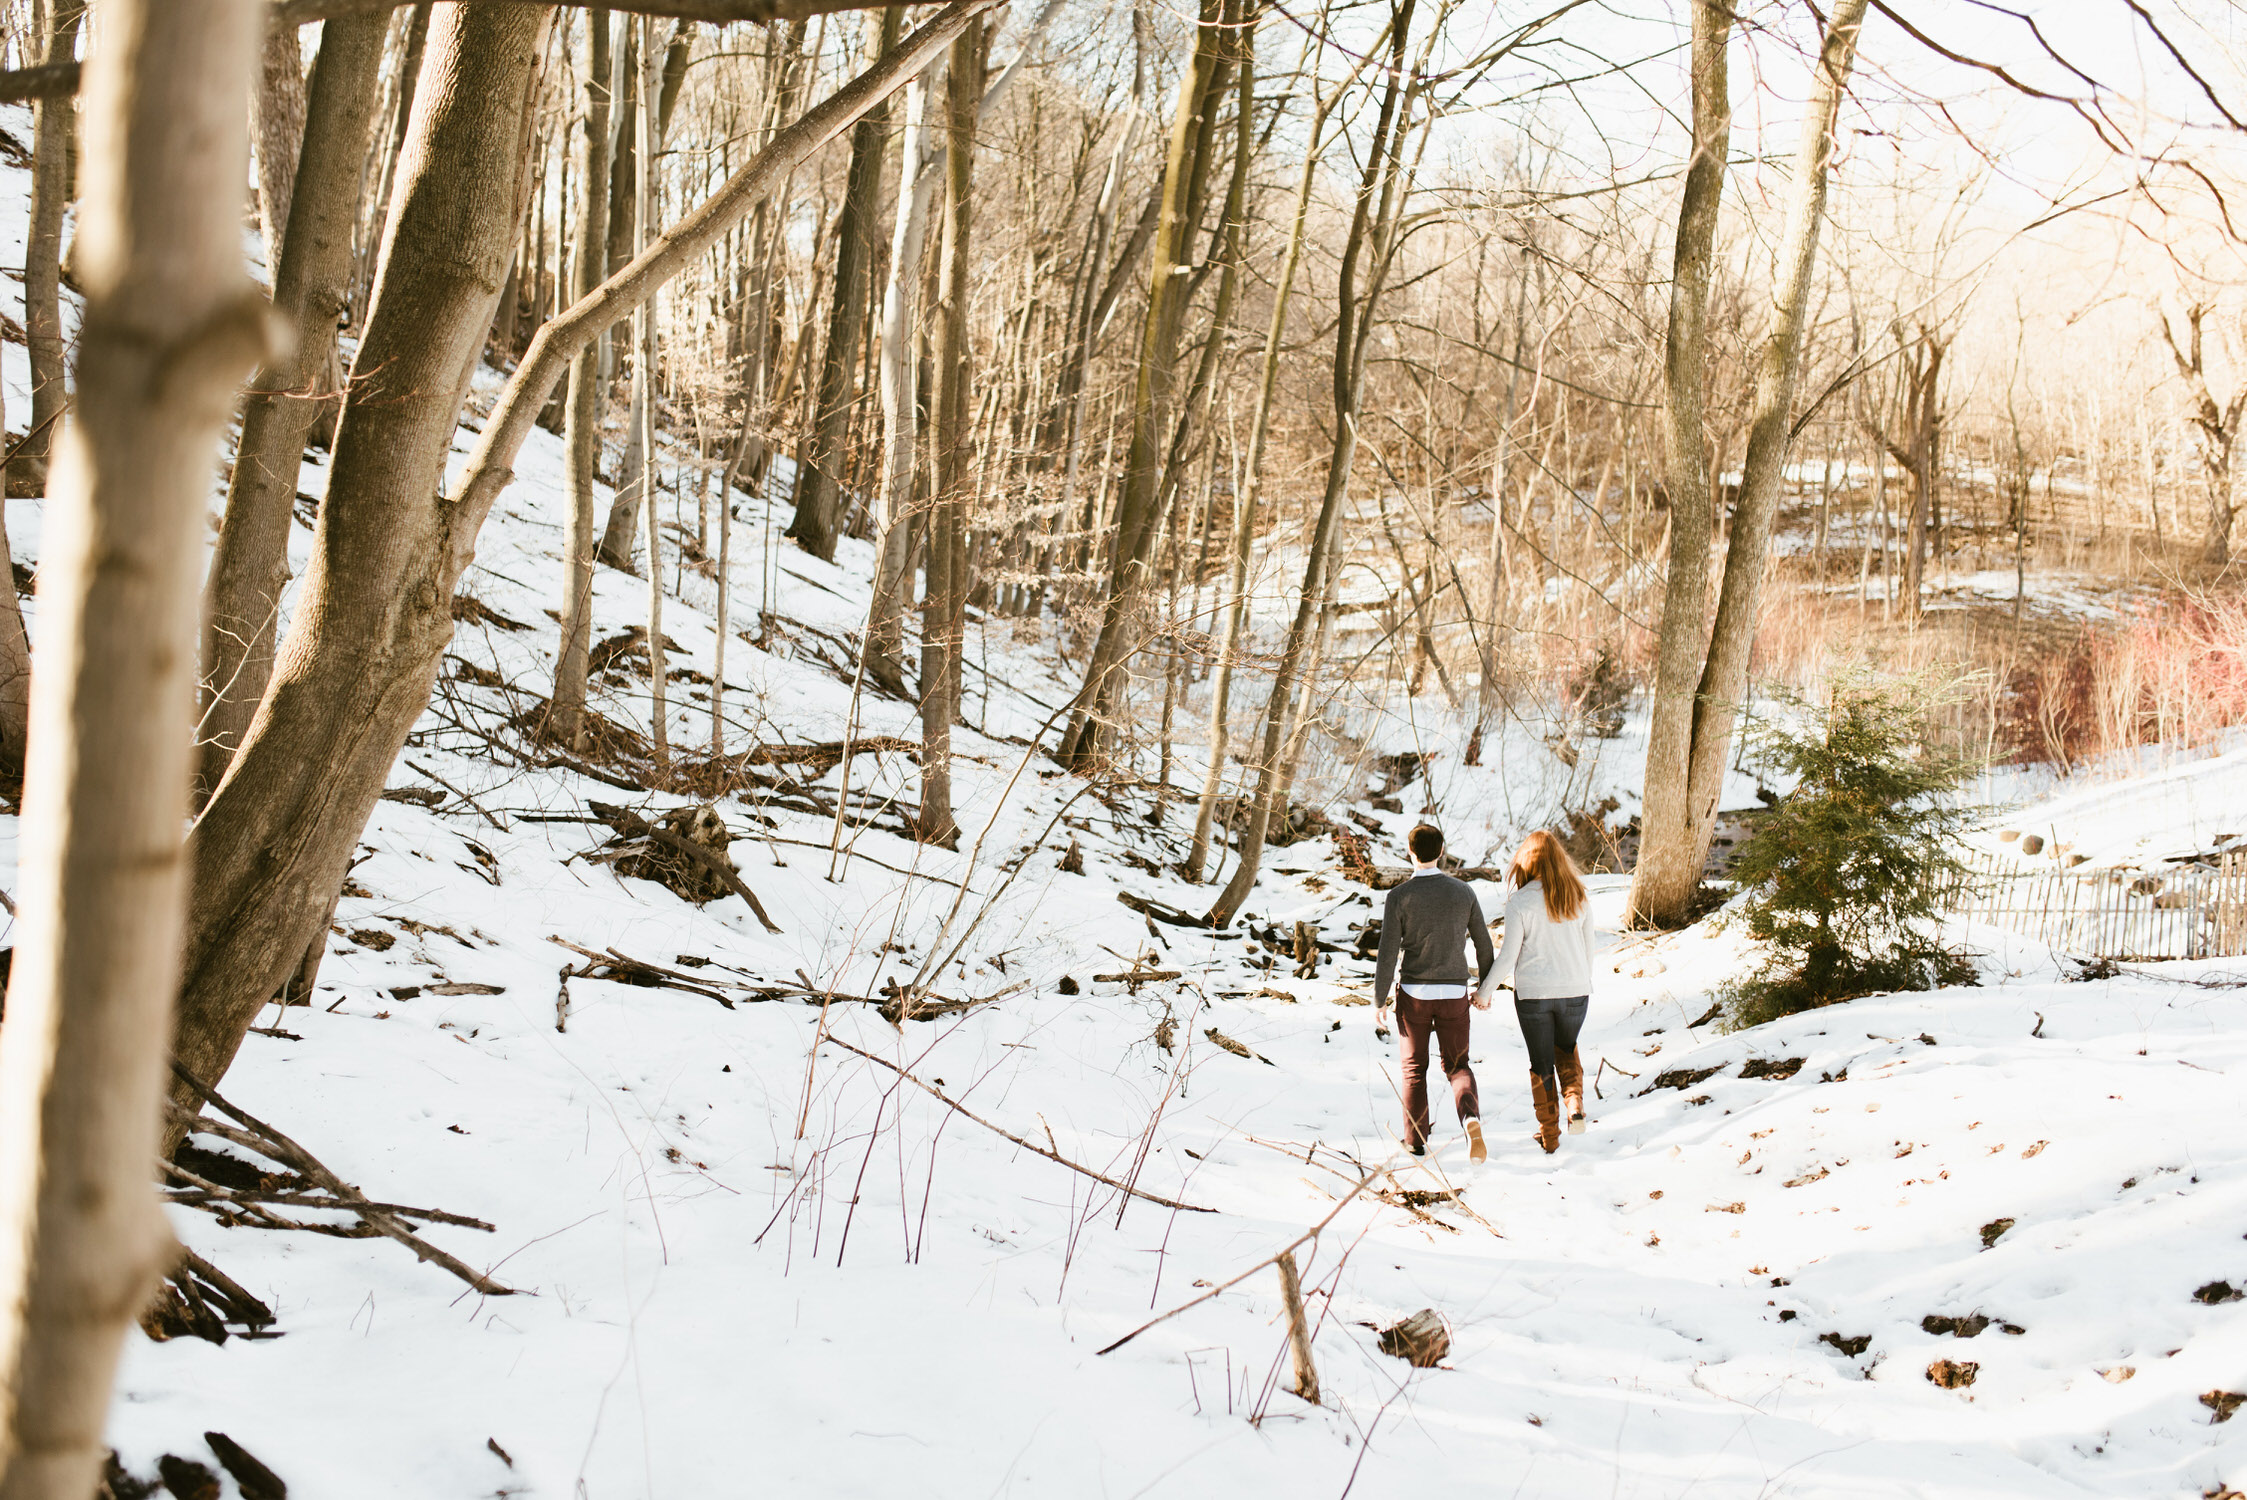 Isabel and Matt walking into a snowy area of Evergreen Brickworks